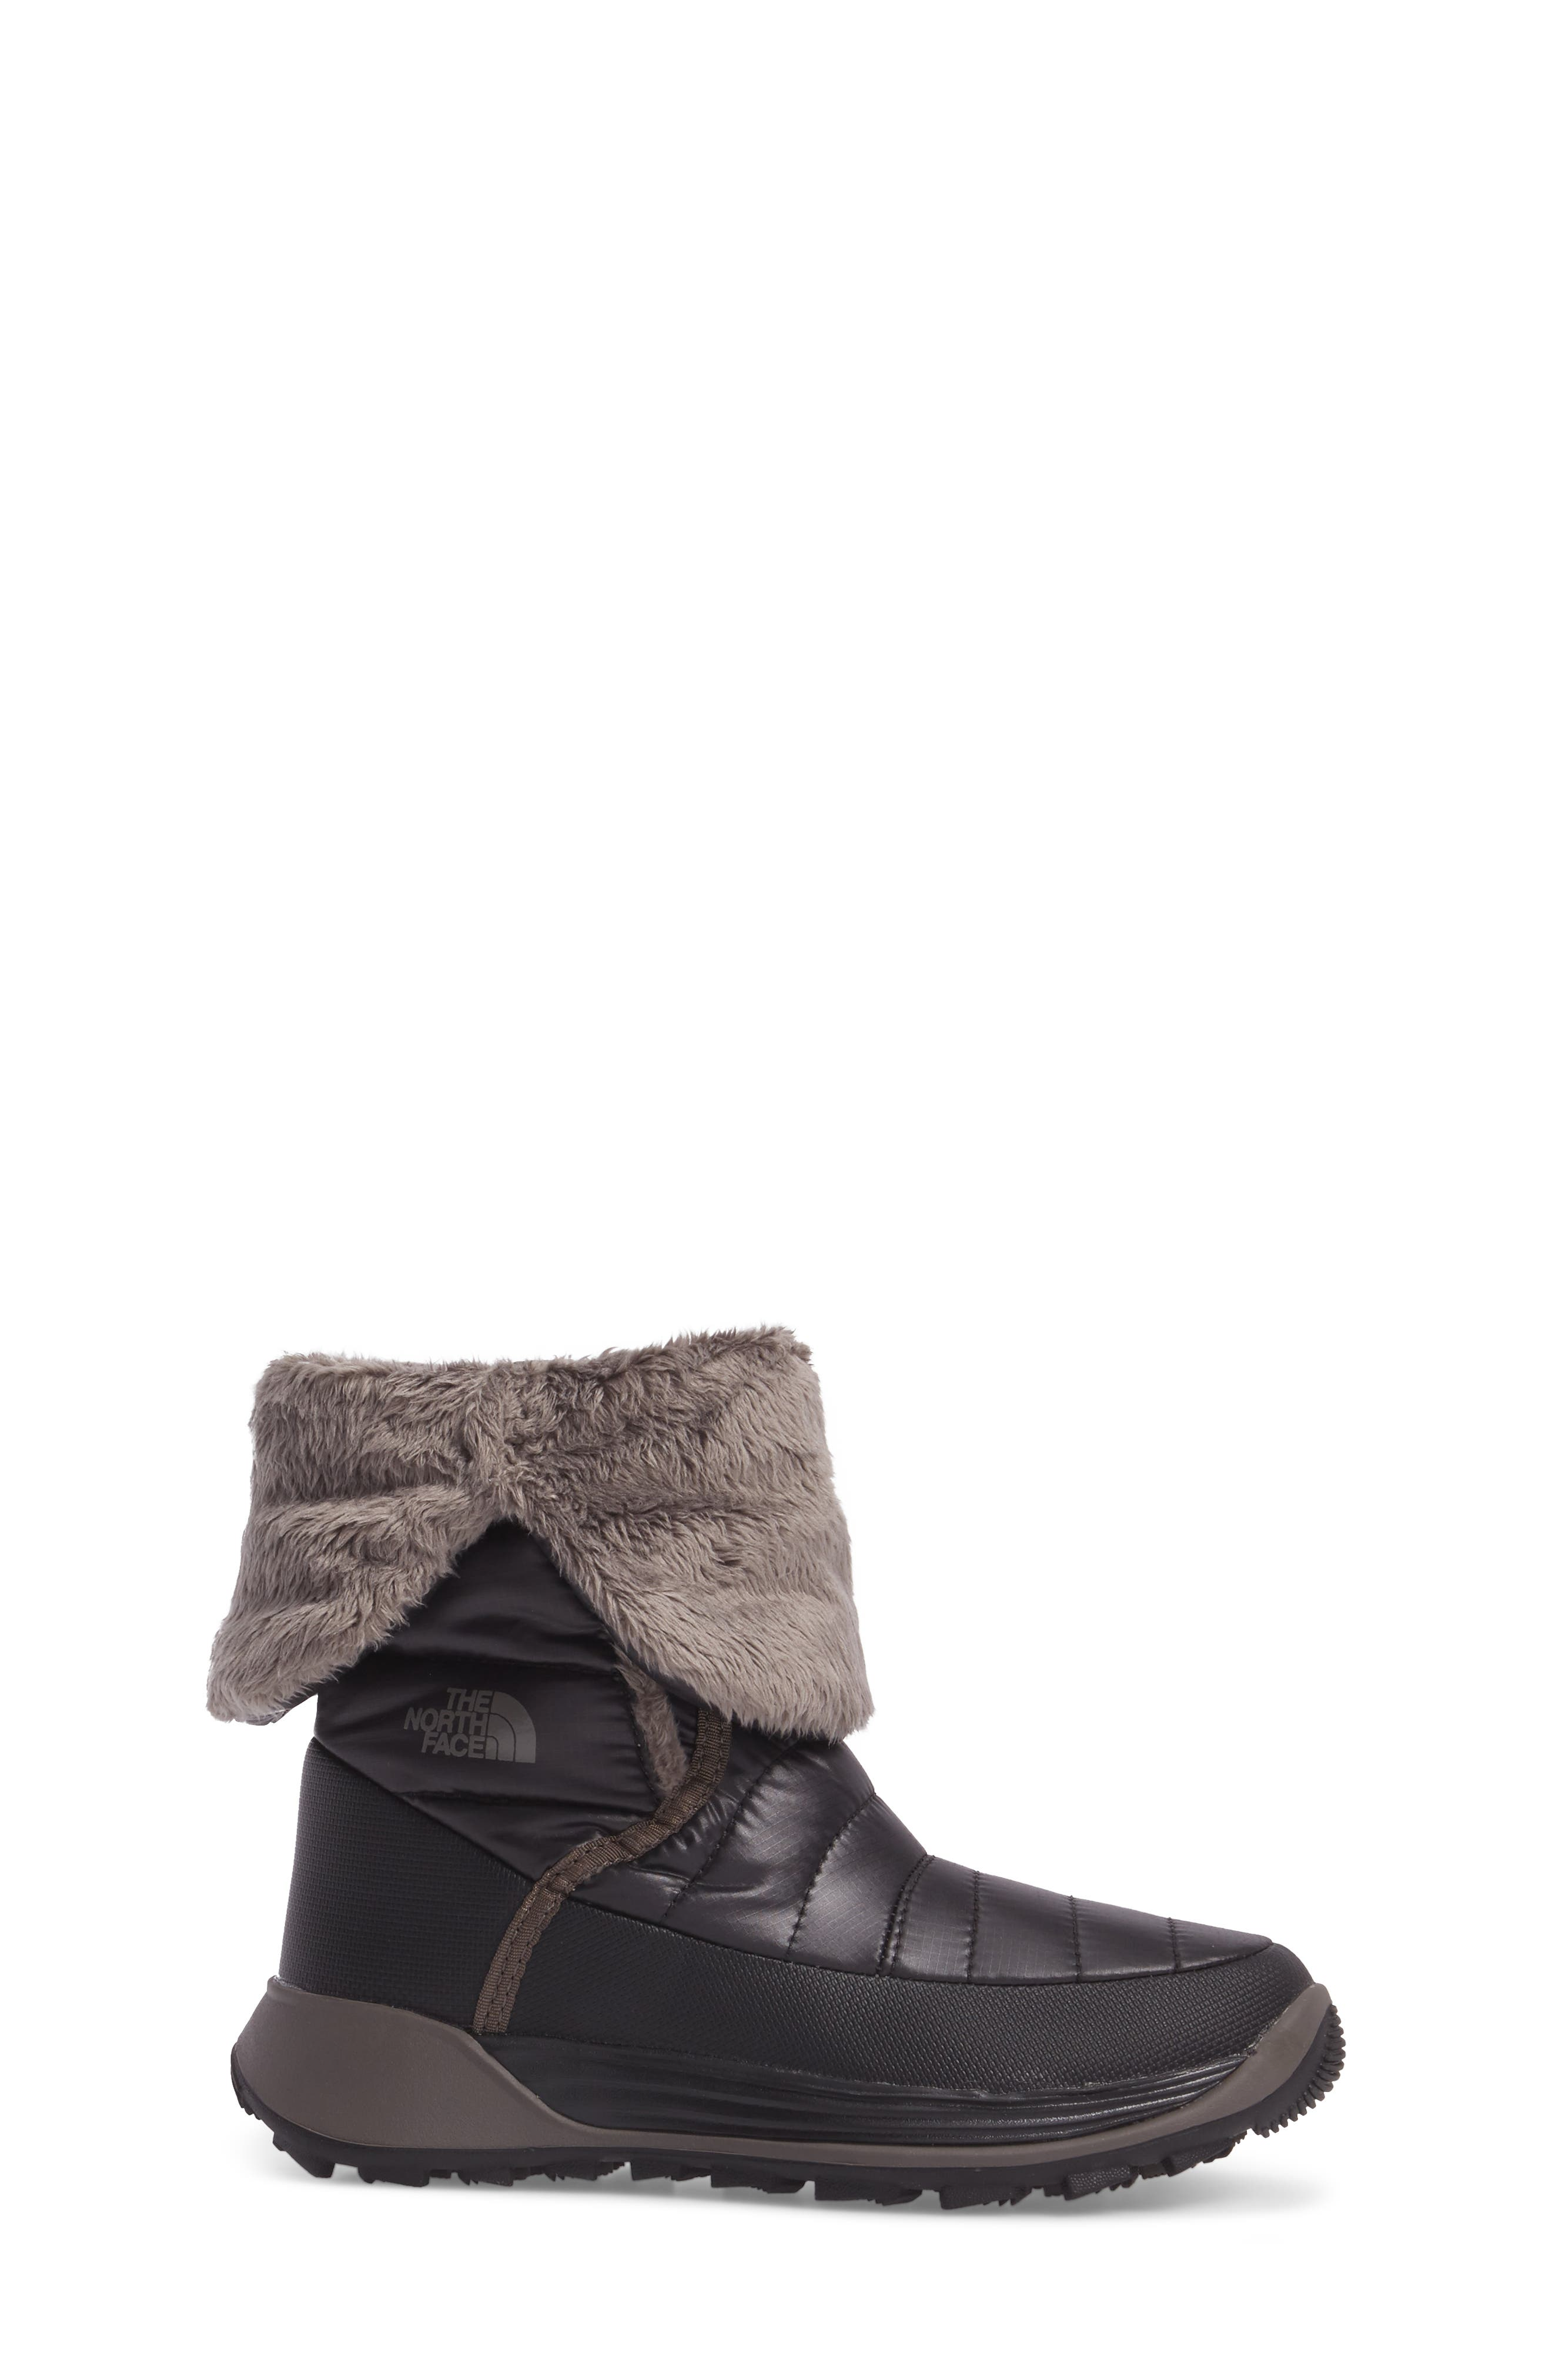 THE NORTH FACE, Amore II Water-Resistant Winter Boot, Alternate thumbnail 3, color, TNF BLACK/ DARK GULL GREY